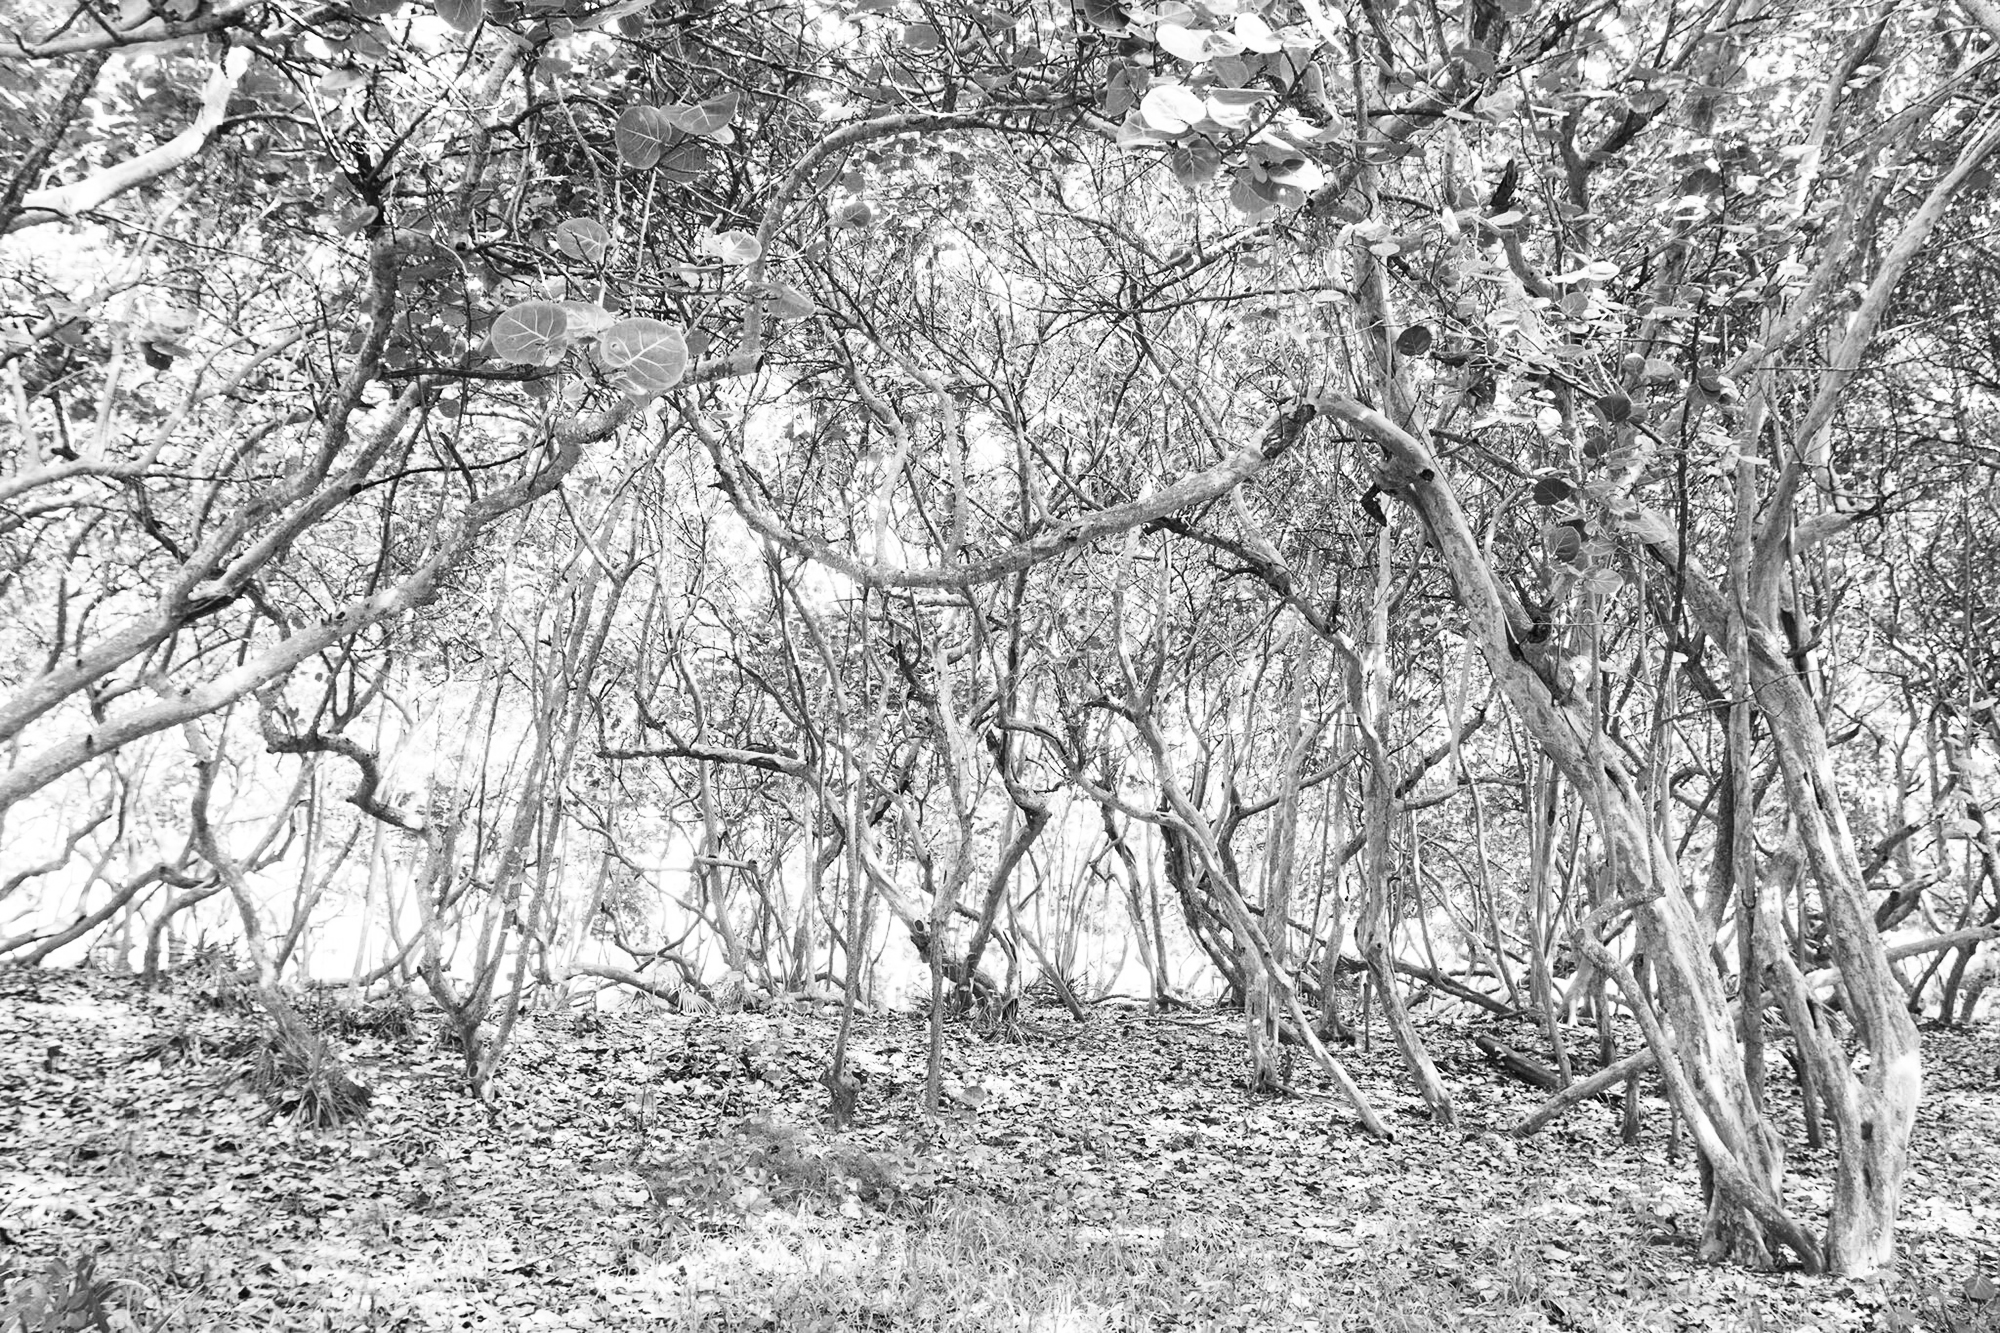 MANGROVES 1, 2017   ARCHIVAL PIGMENT PRINT ON COTTON RAG PAPER FRAMED DATED AND SIGNED ON VERSO  SIZES 45 X 30 INCHES 36 X 24 INCHES